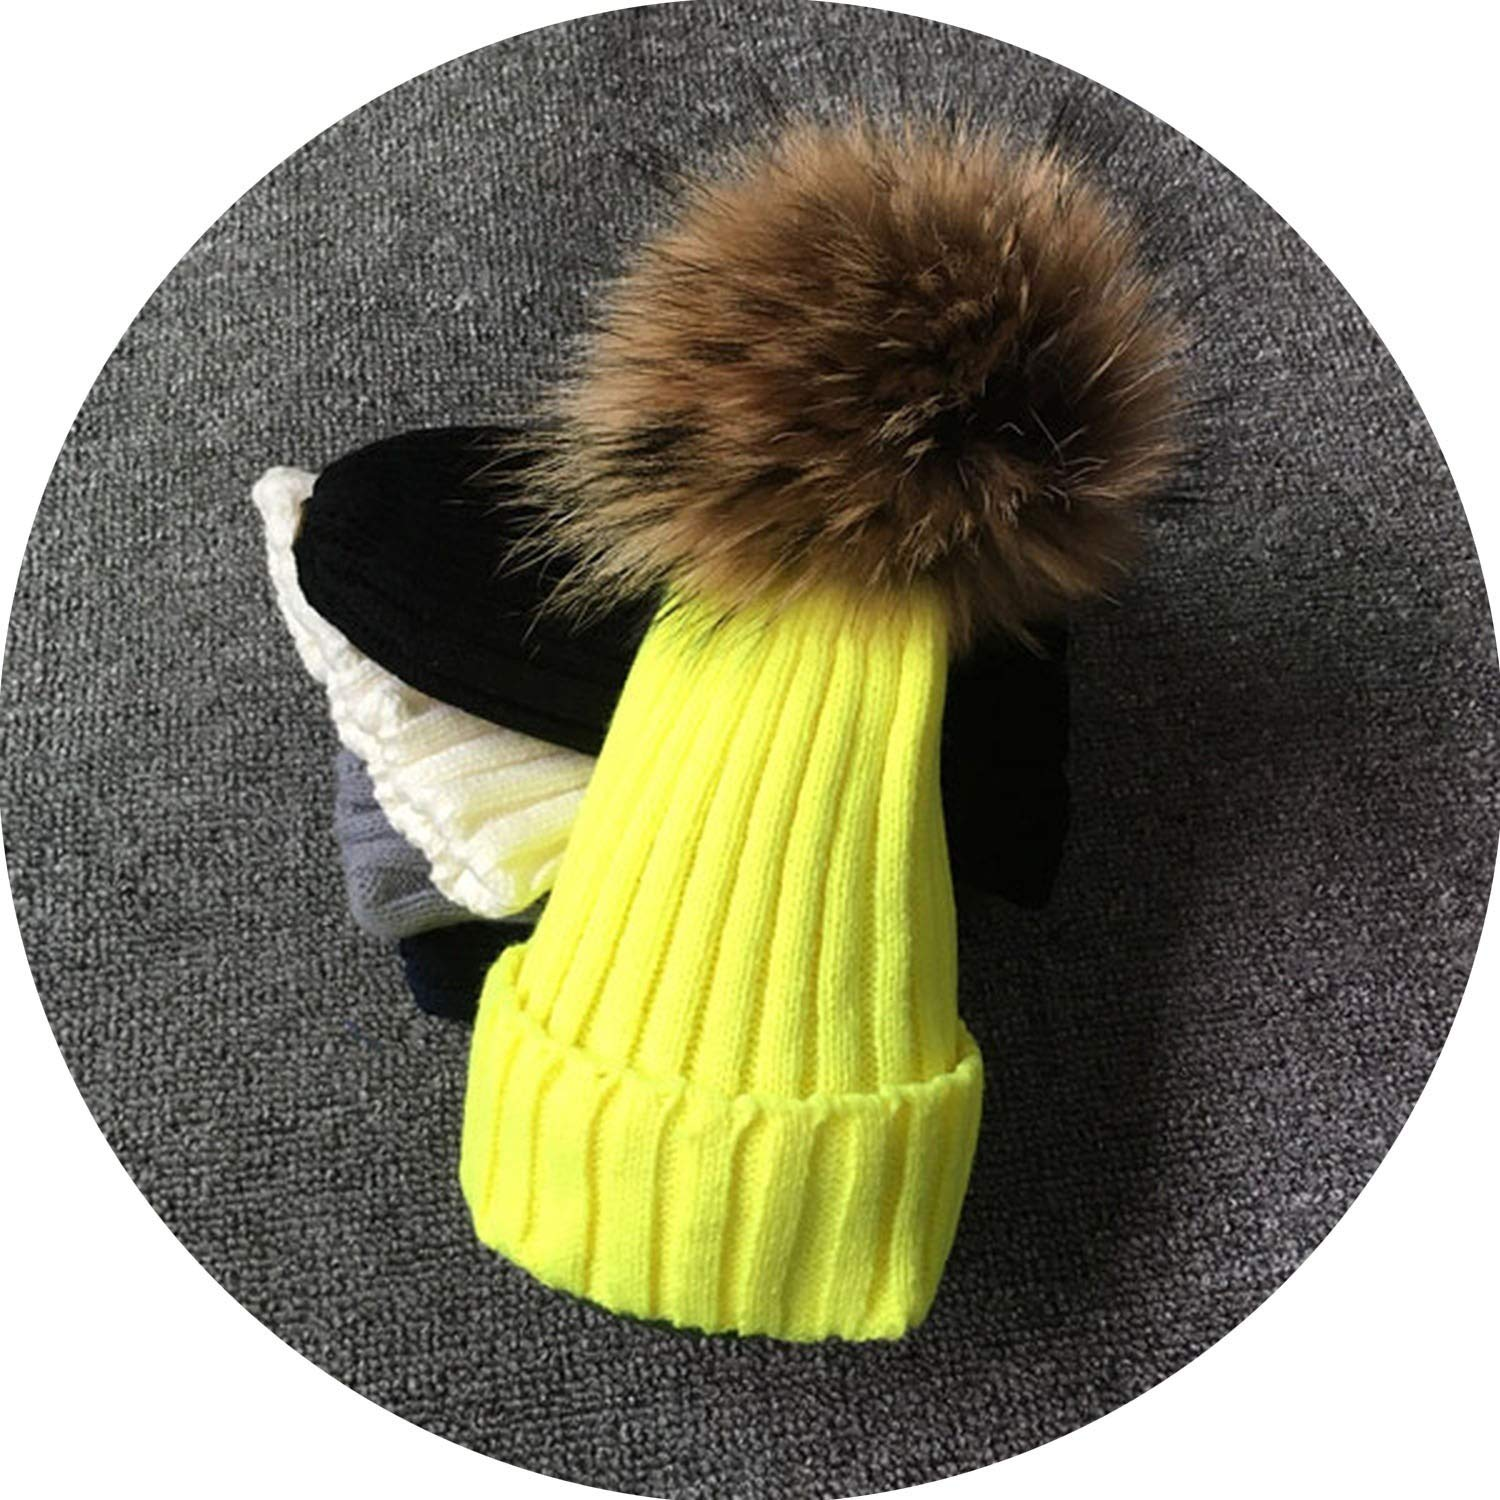 Secret-shop Female Fur Pom Poms hat Winter Hat for Women Girl s Hat Knitted Beanies Cap Hat,Yellow with Fur,Kid Size